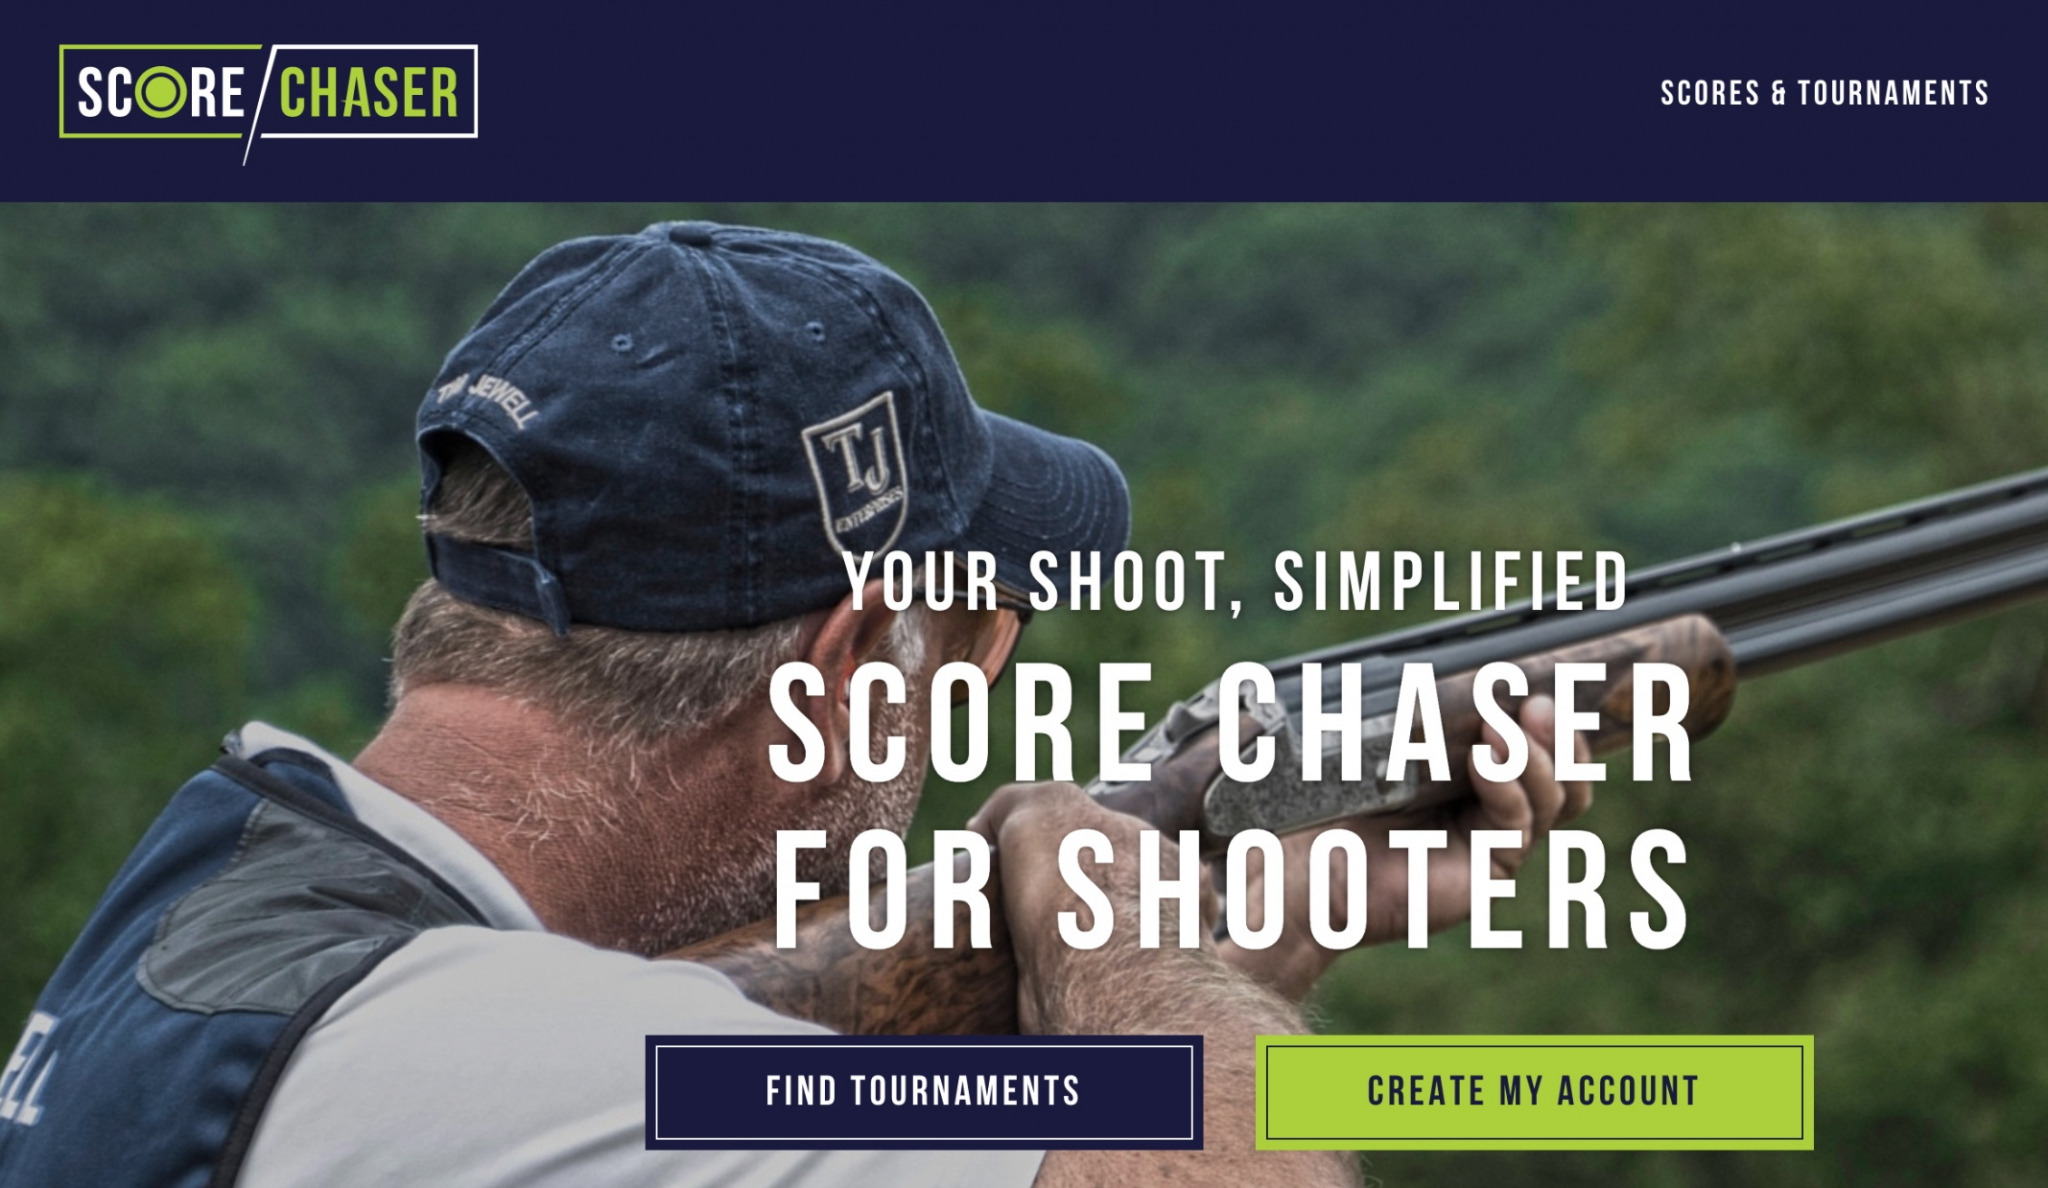 Score Chaser homepage